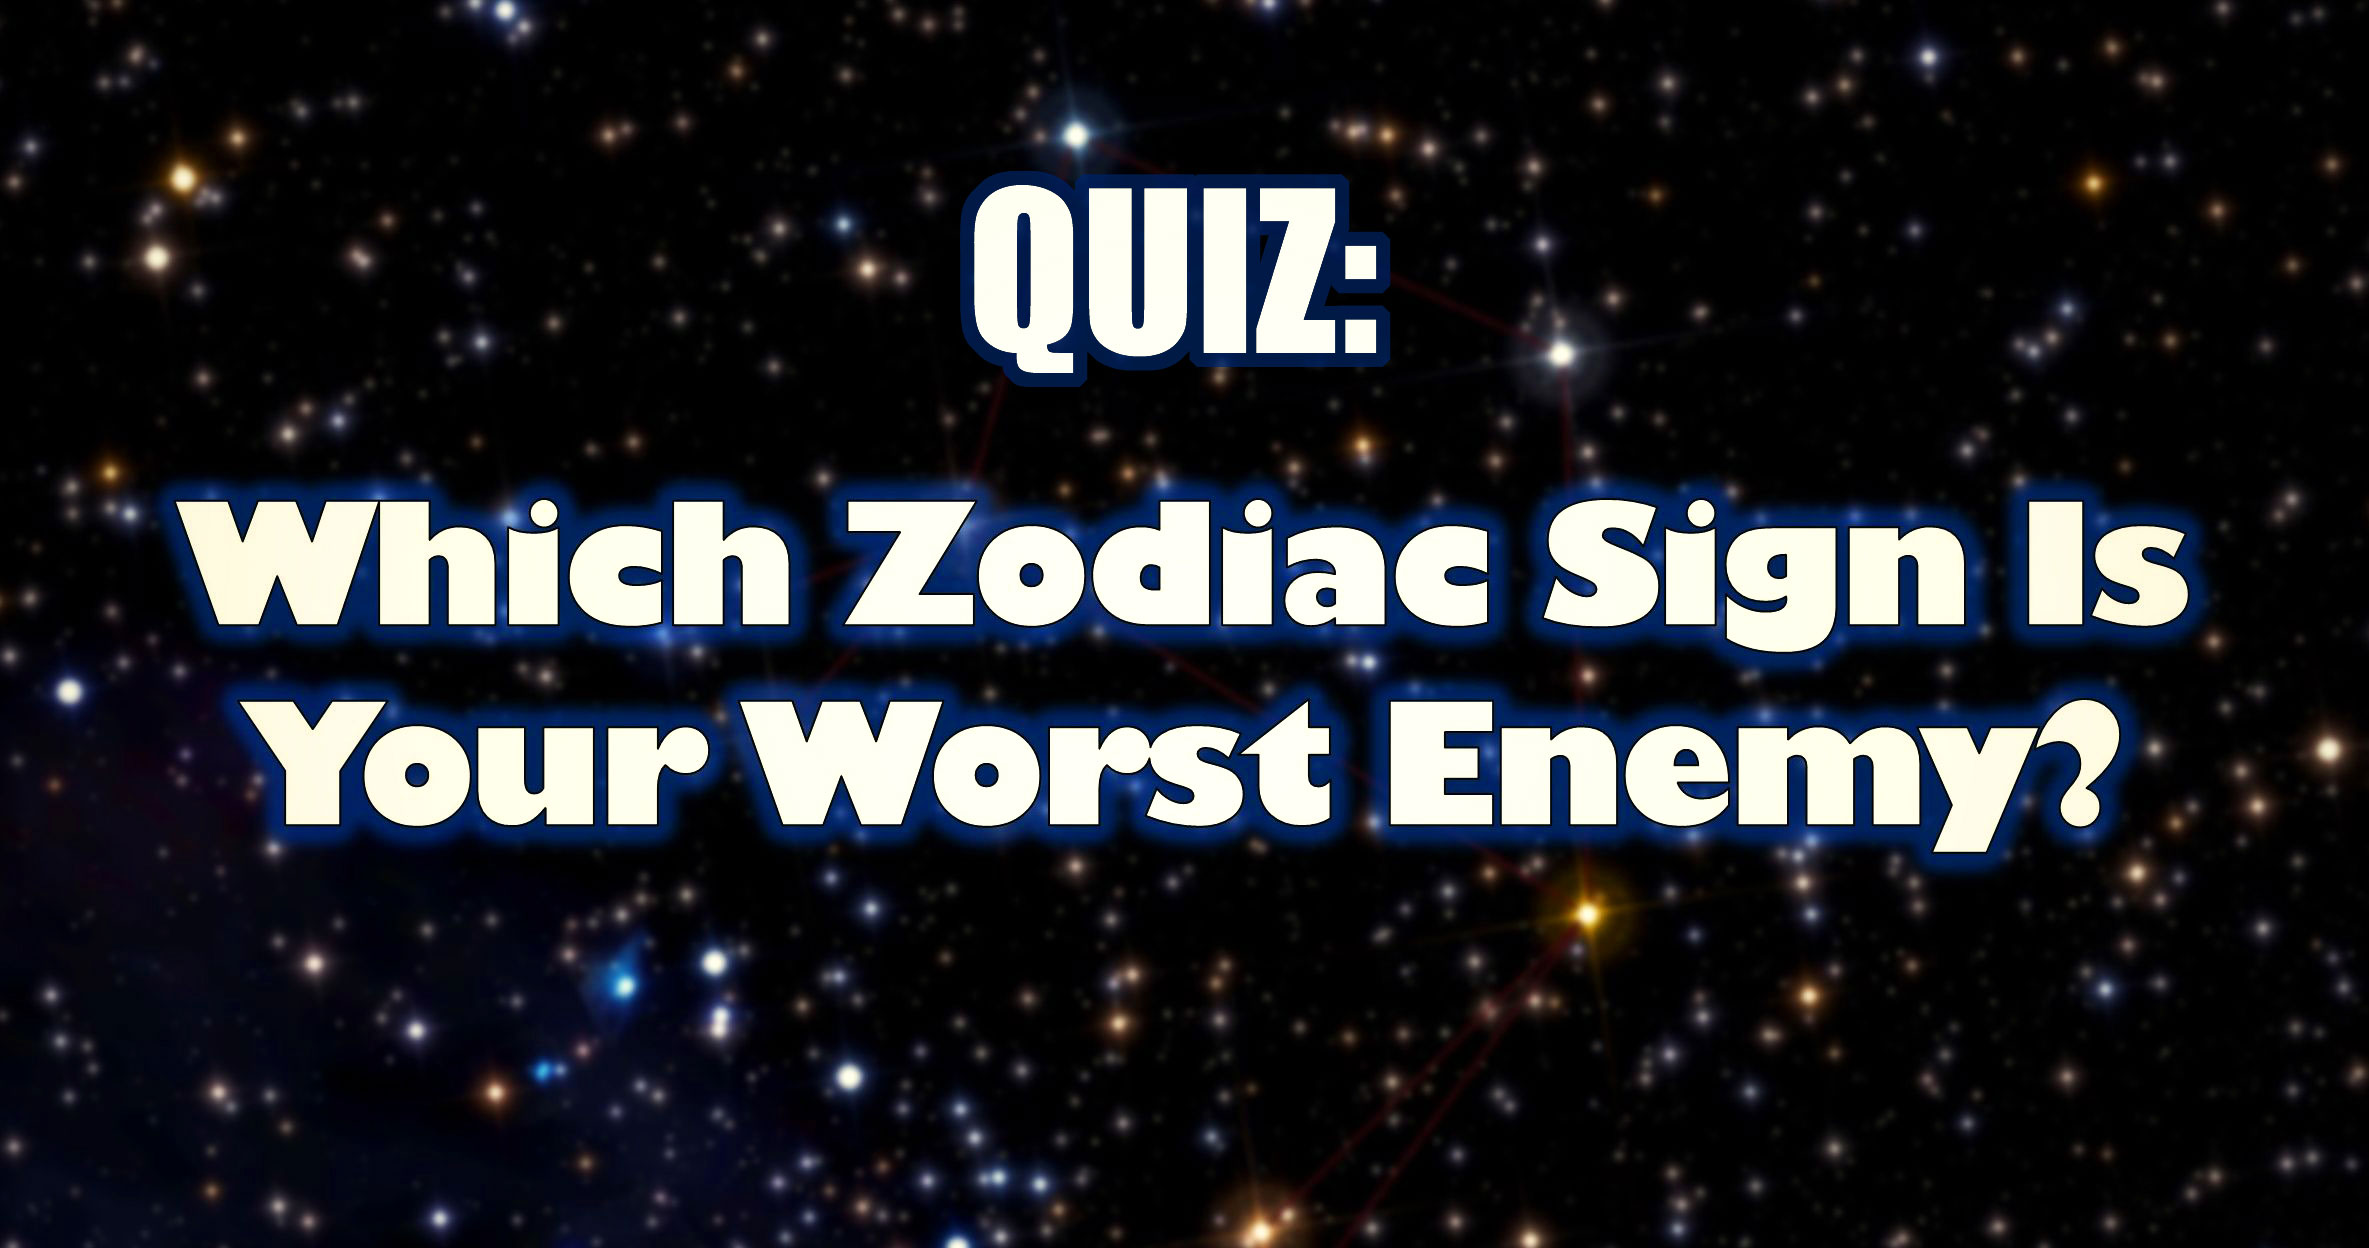 Quiz which zodiac sign is your worst enemy quiz which zodiac sign is your worst enemy find out and let us know your results in the comments below buycottarizona Image collections